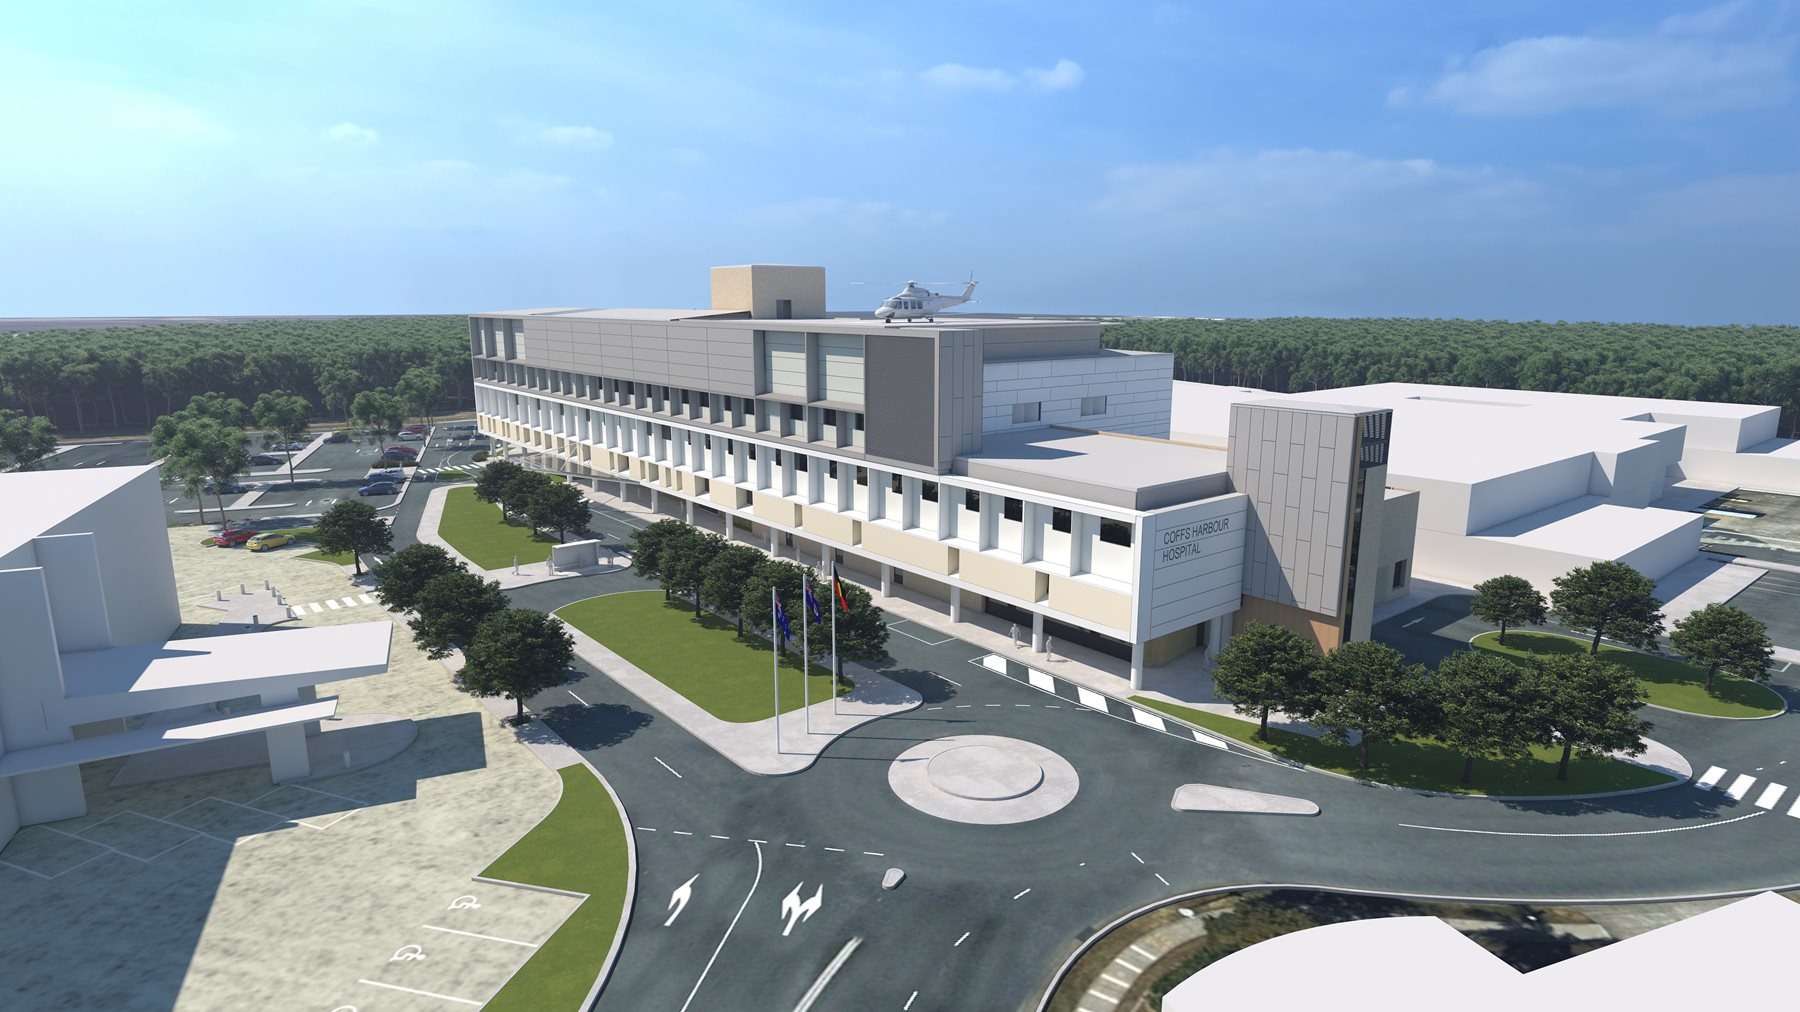 Plans revealed for Coffs Harbour Hospital Expansion